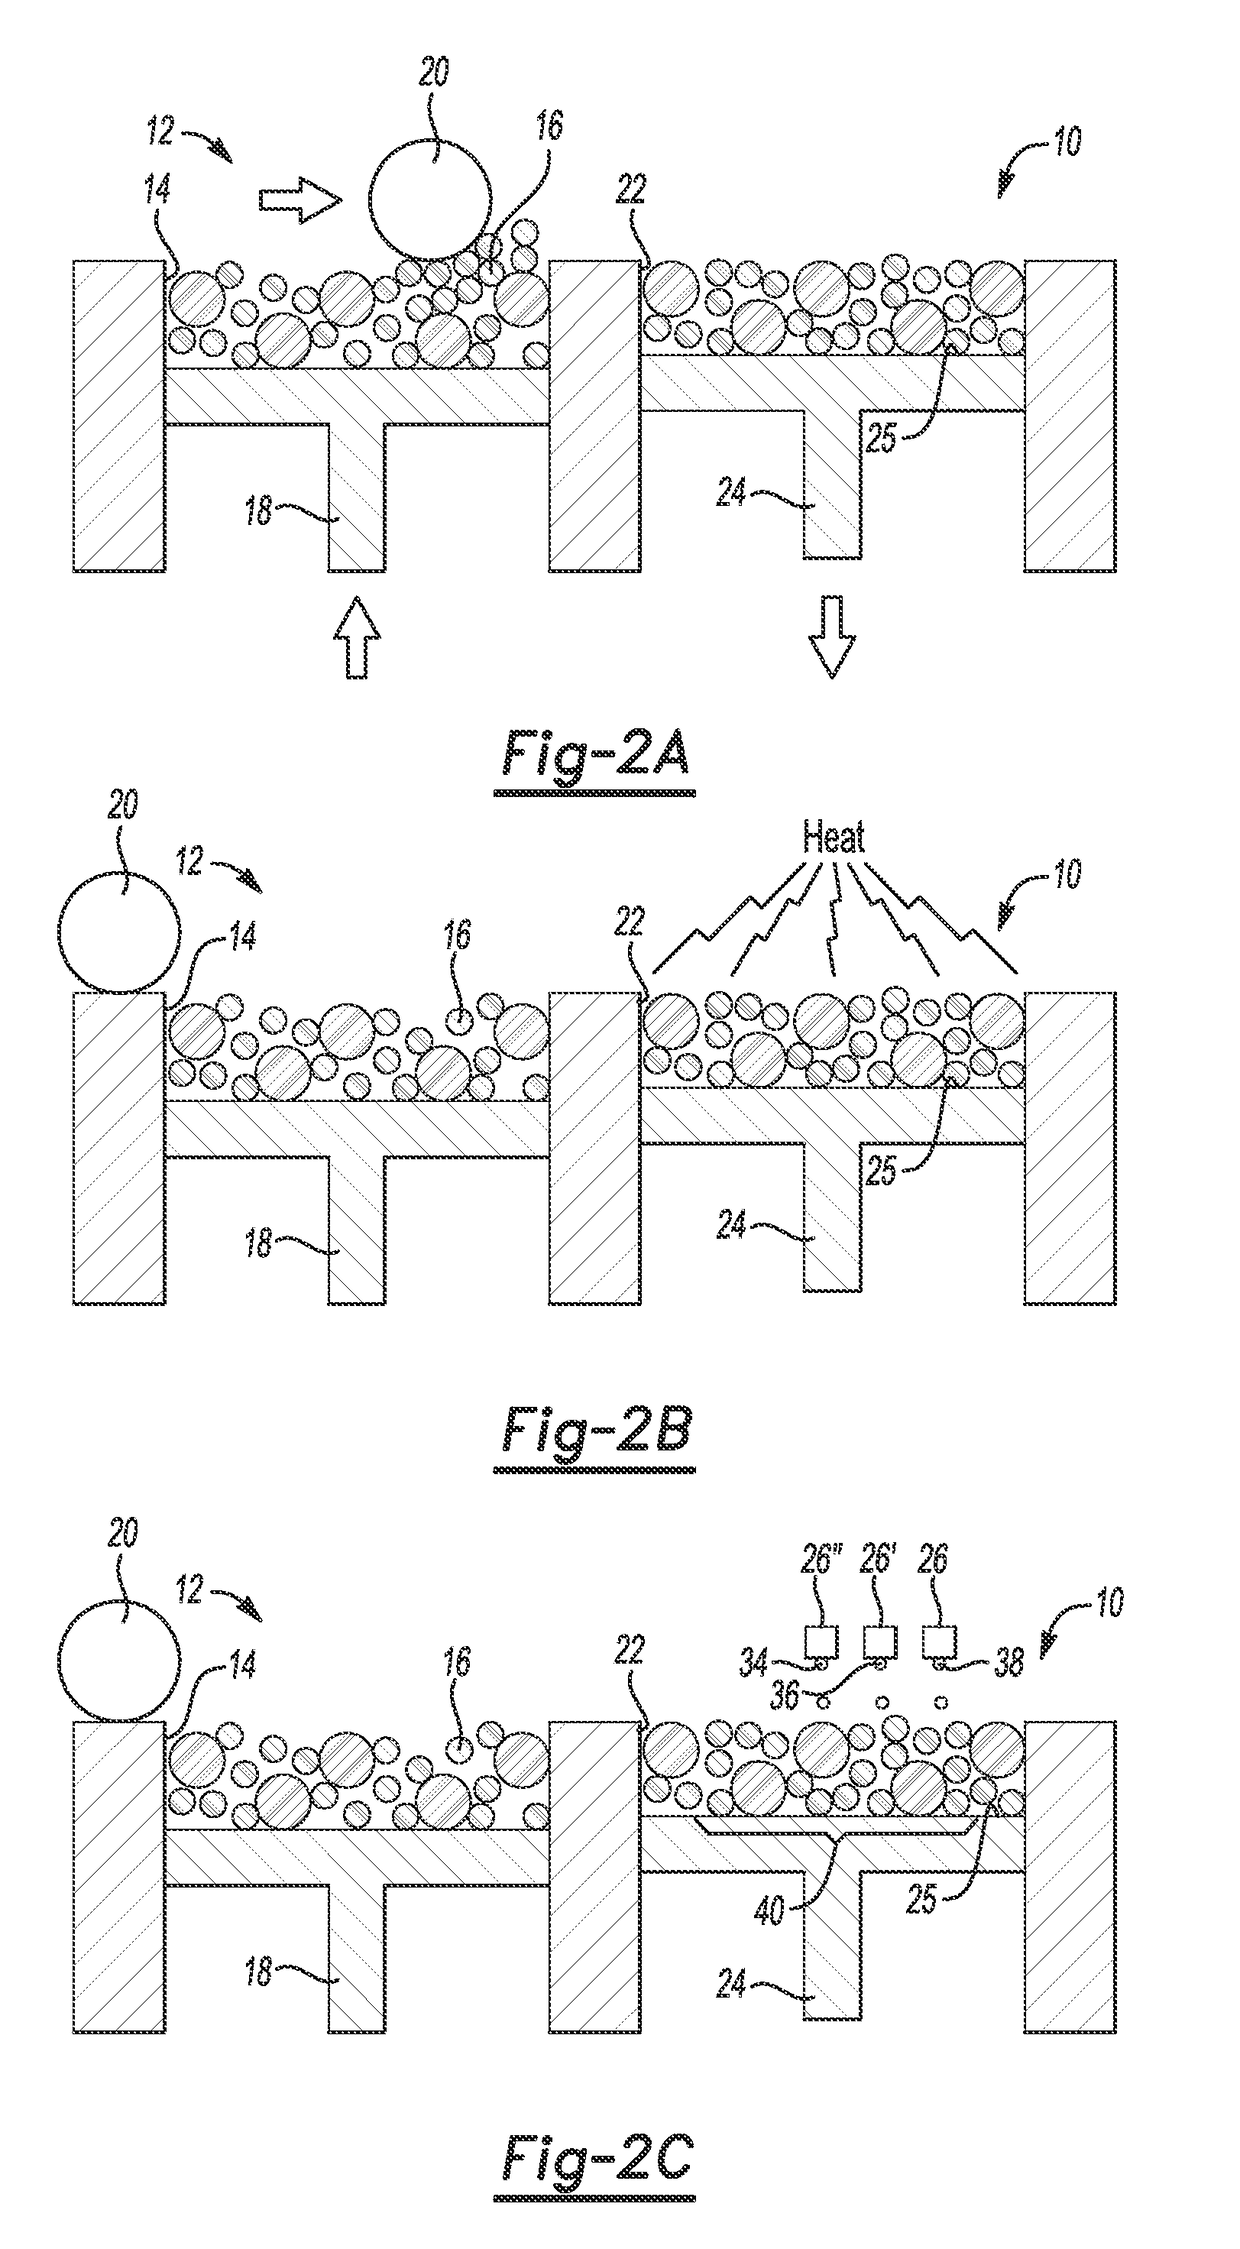 Patent Report: | US20180015664A1 | Three Dimensional 3D Printing